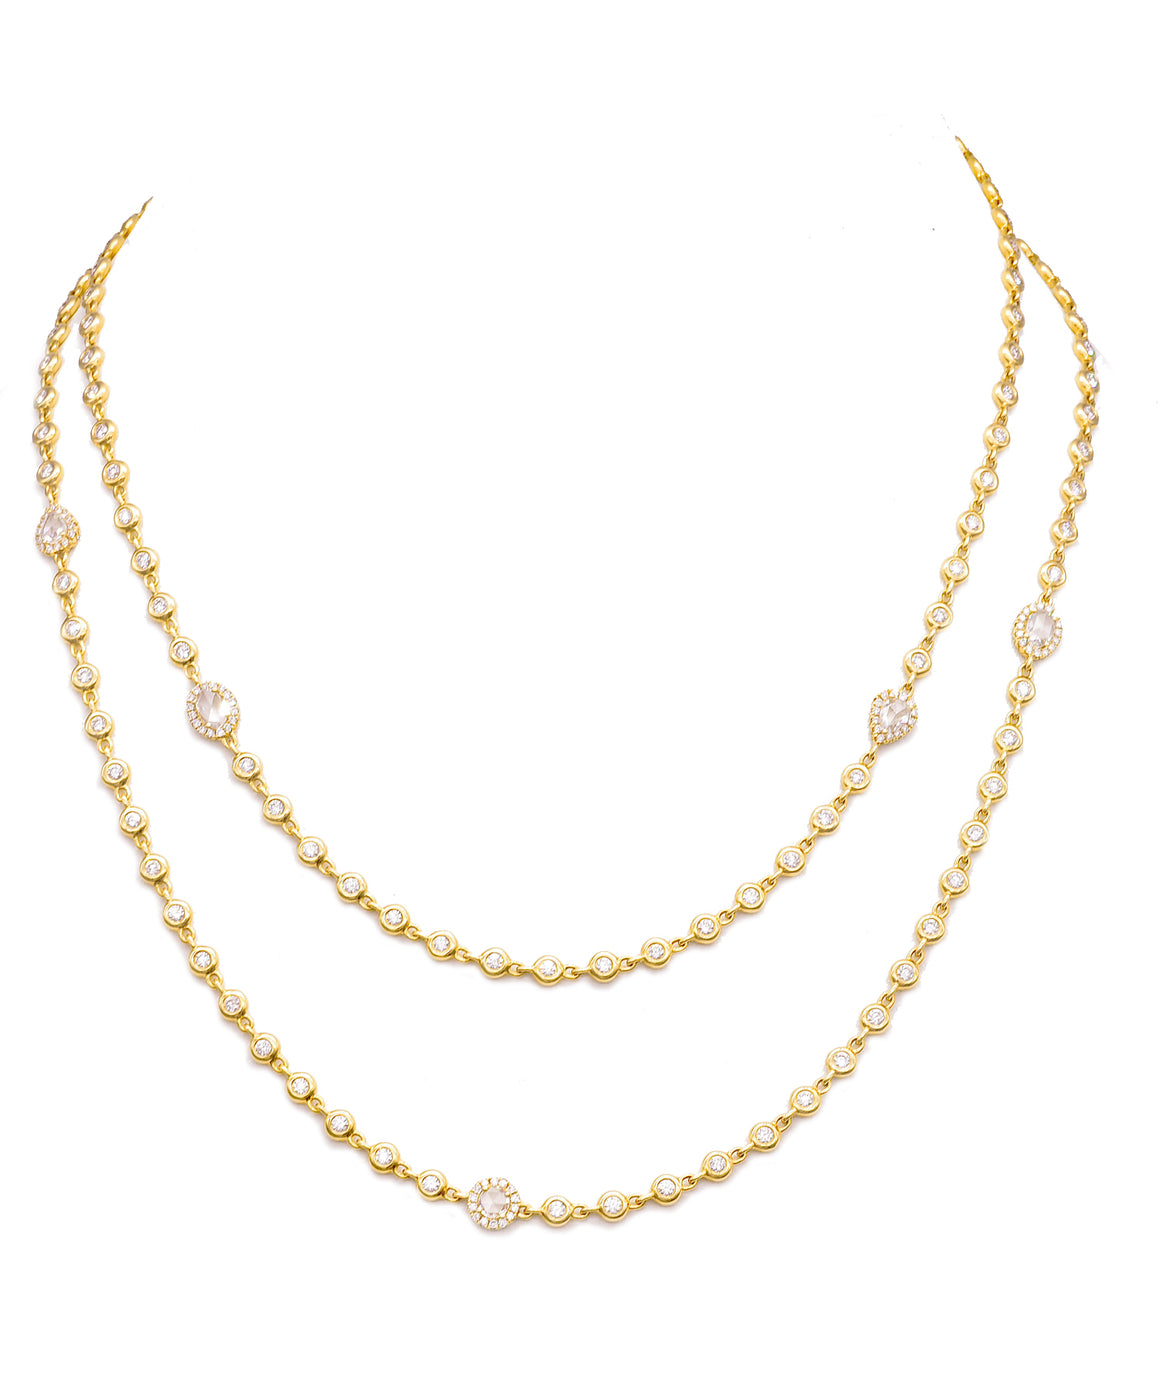 Cascade necklace in yellow gold